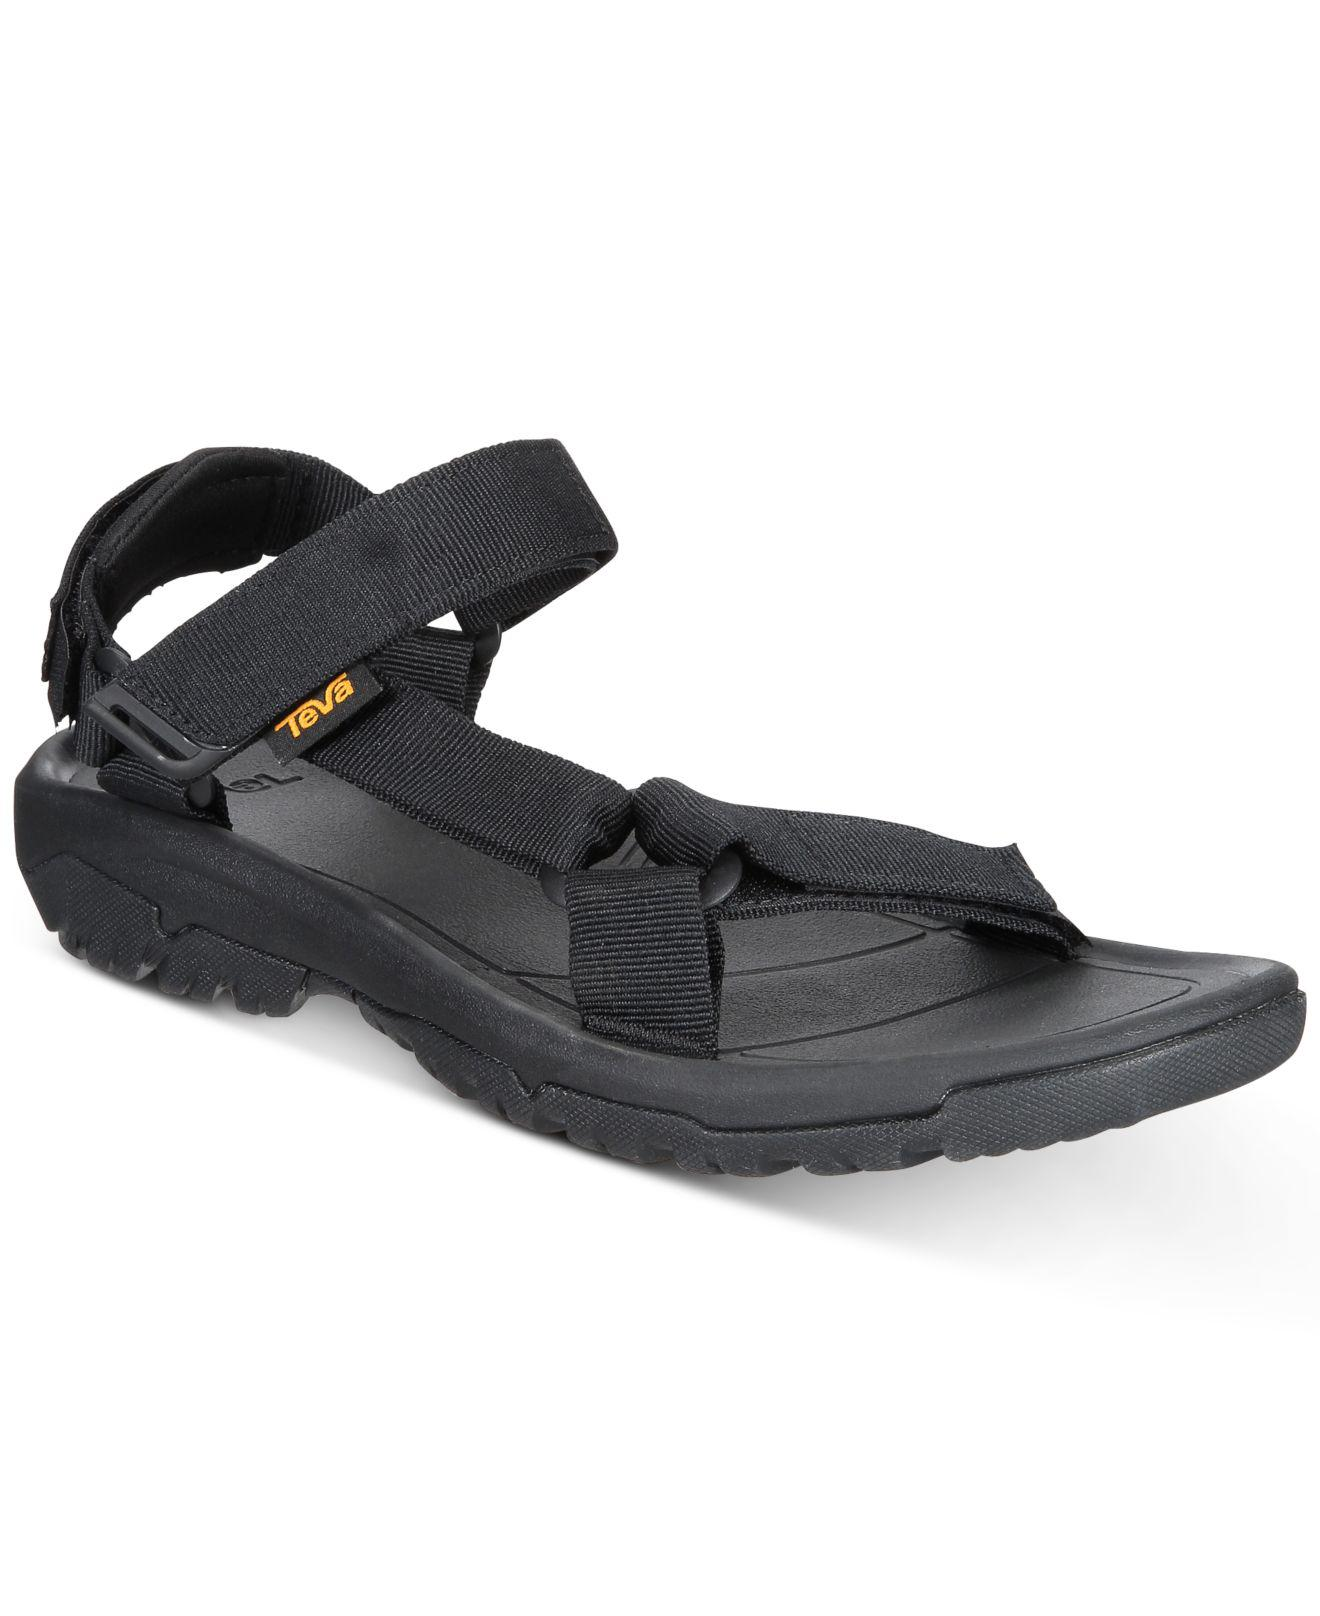 8fc2893129d2 Teva - Black Hurricane Xlt2 Water-resistant Sandals for Men - Lyst. View  fullscreen